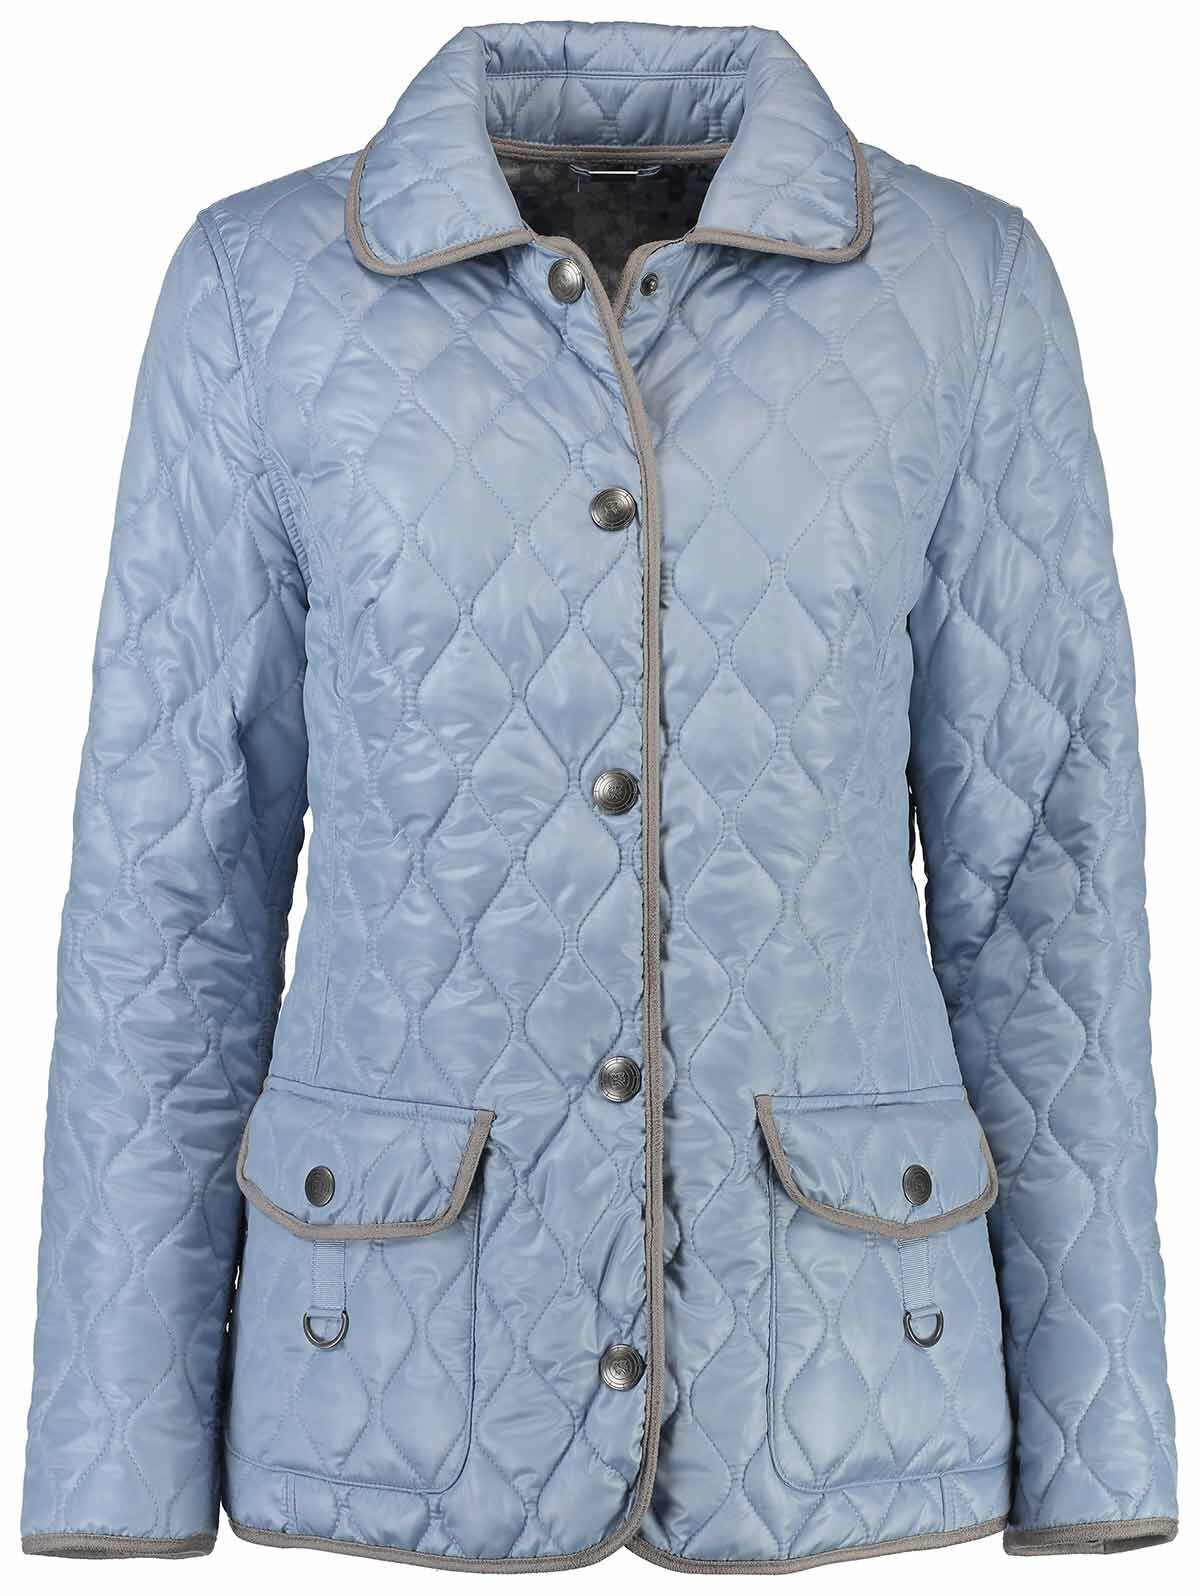 new product 6197c 64005 BARBARA LEBEK Wende-Steppjacke hellblau